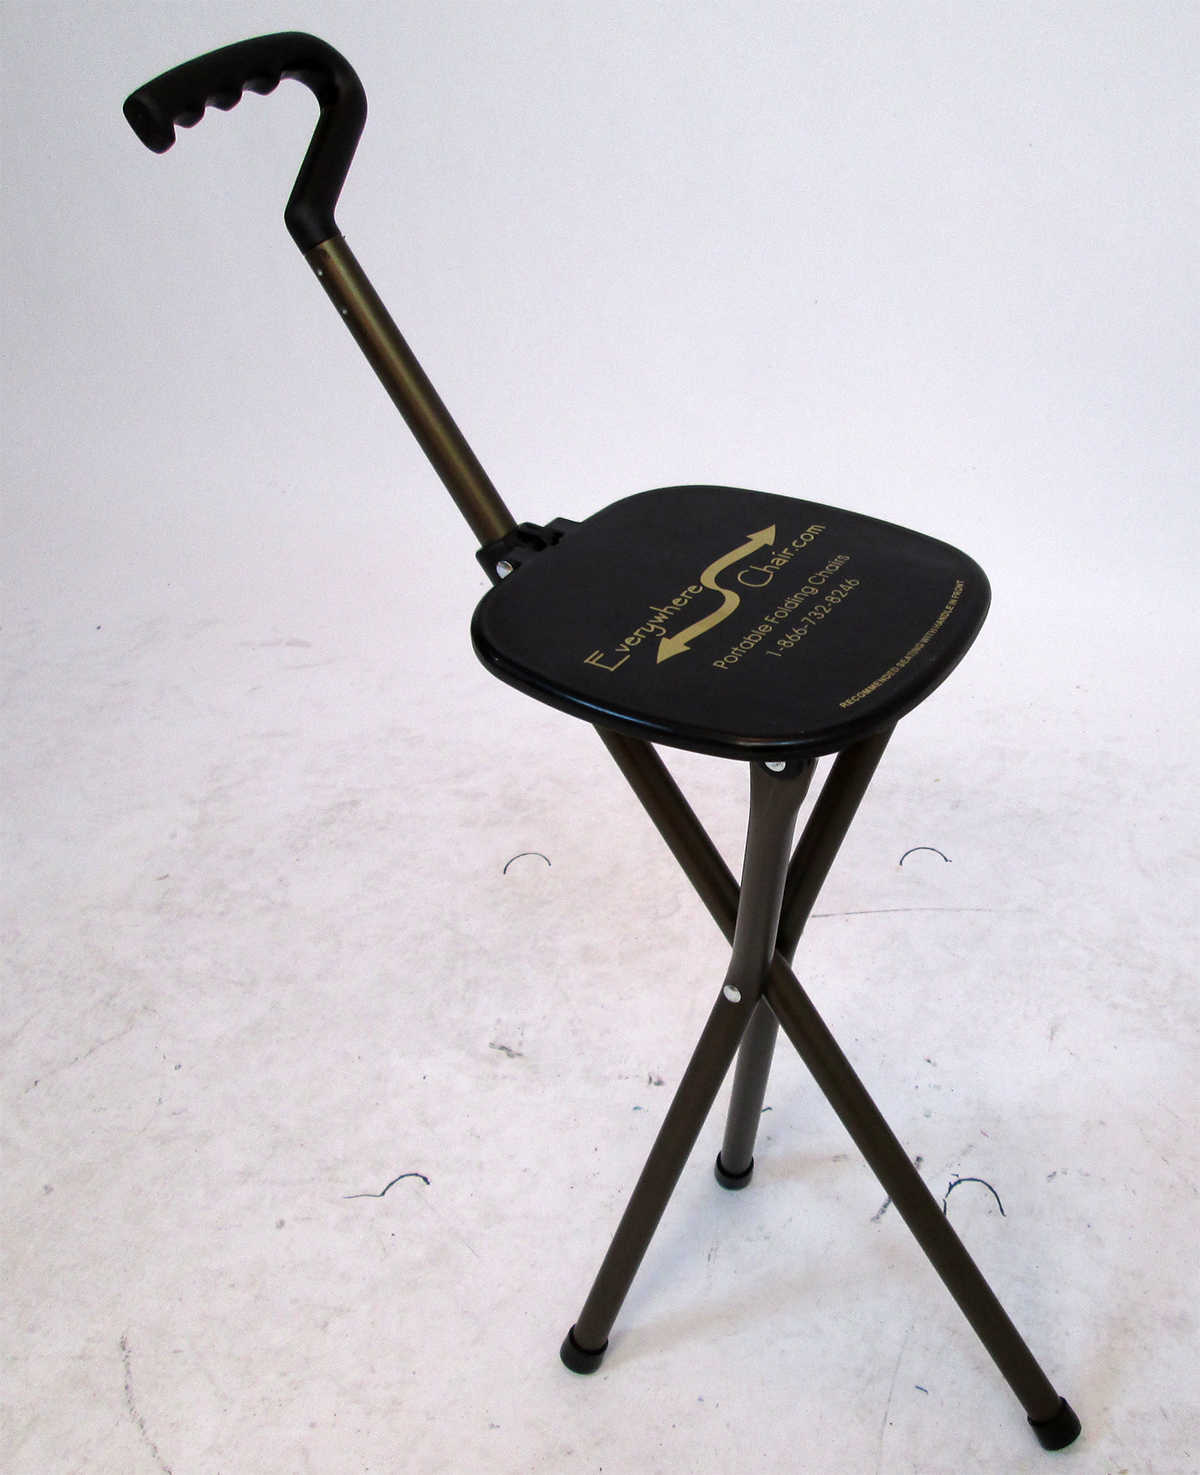 Walking Chair Sport Seat Mini Executive Walking Stick Portable Seat